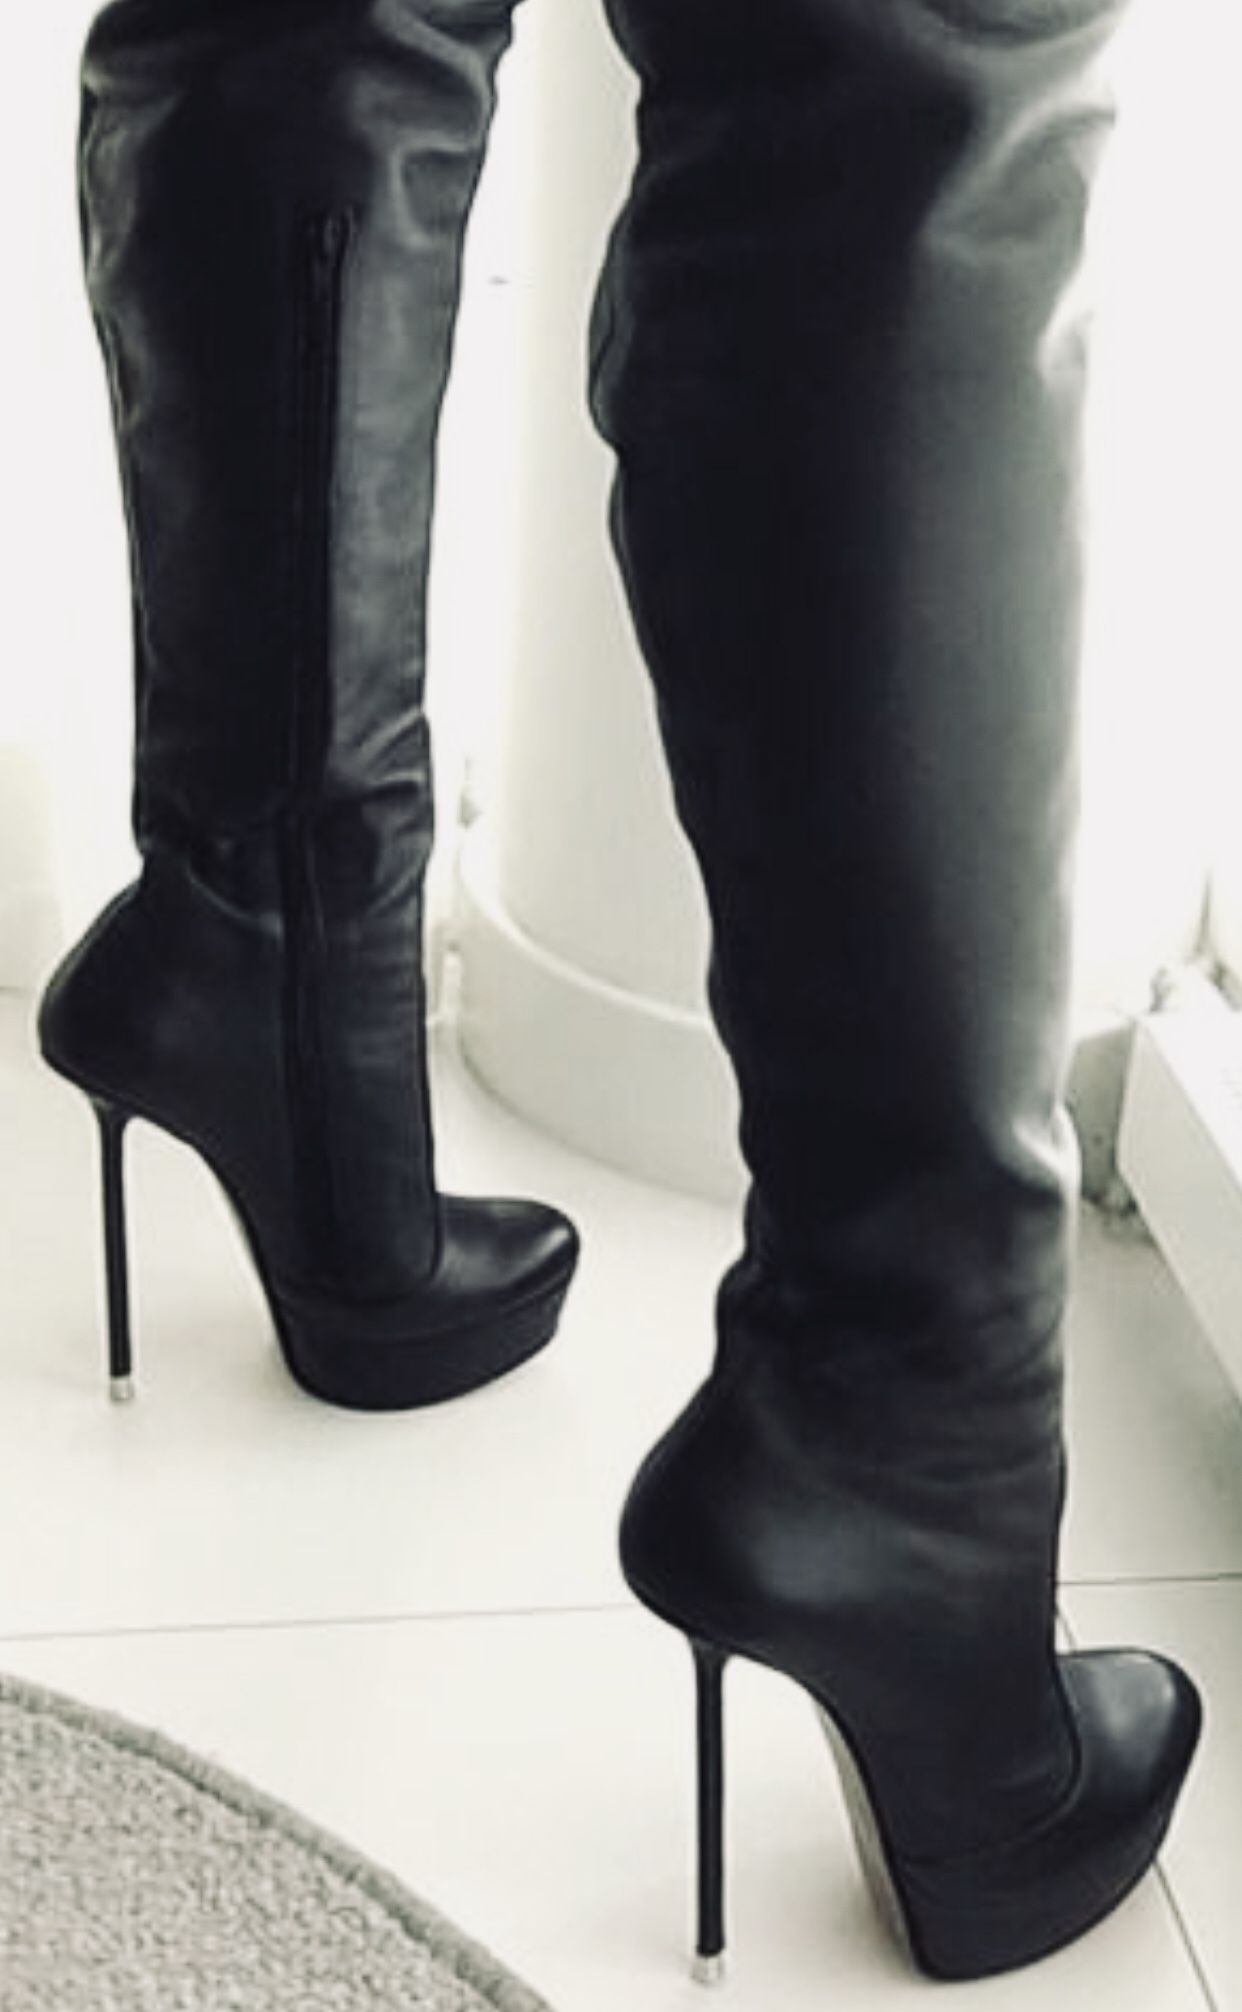 Pin by Extreme Master on Hoge laarzen | Thigh high boots